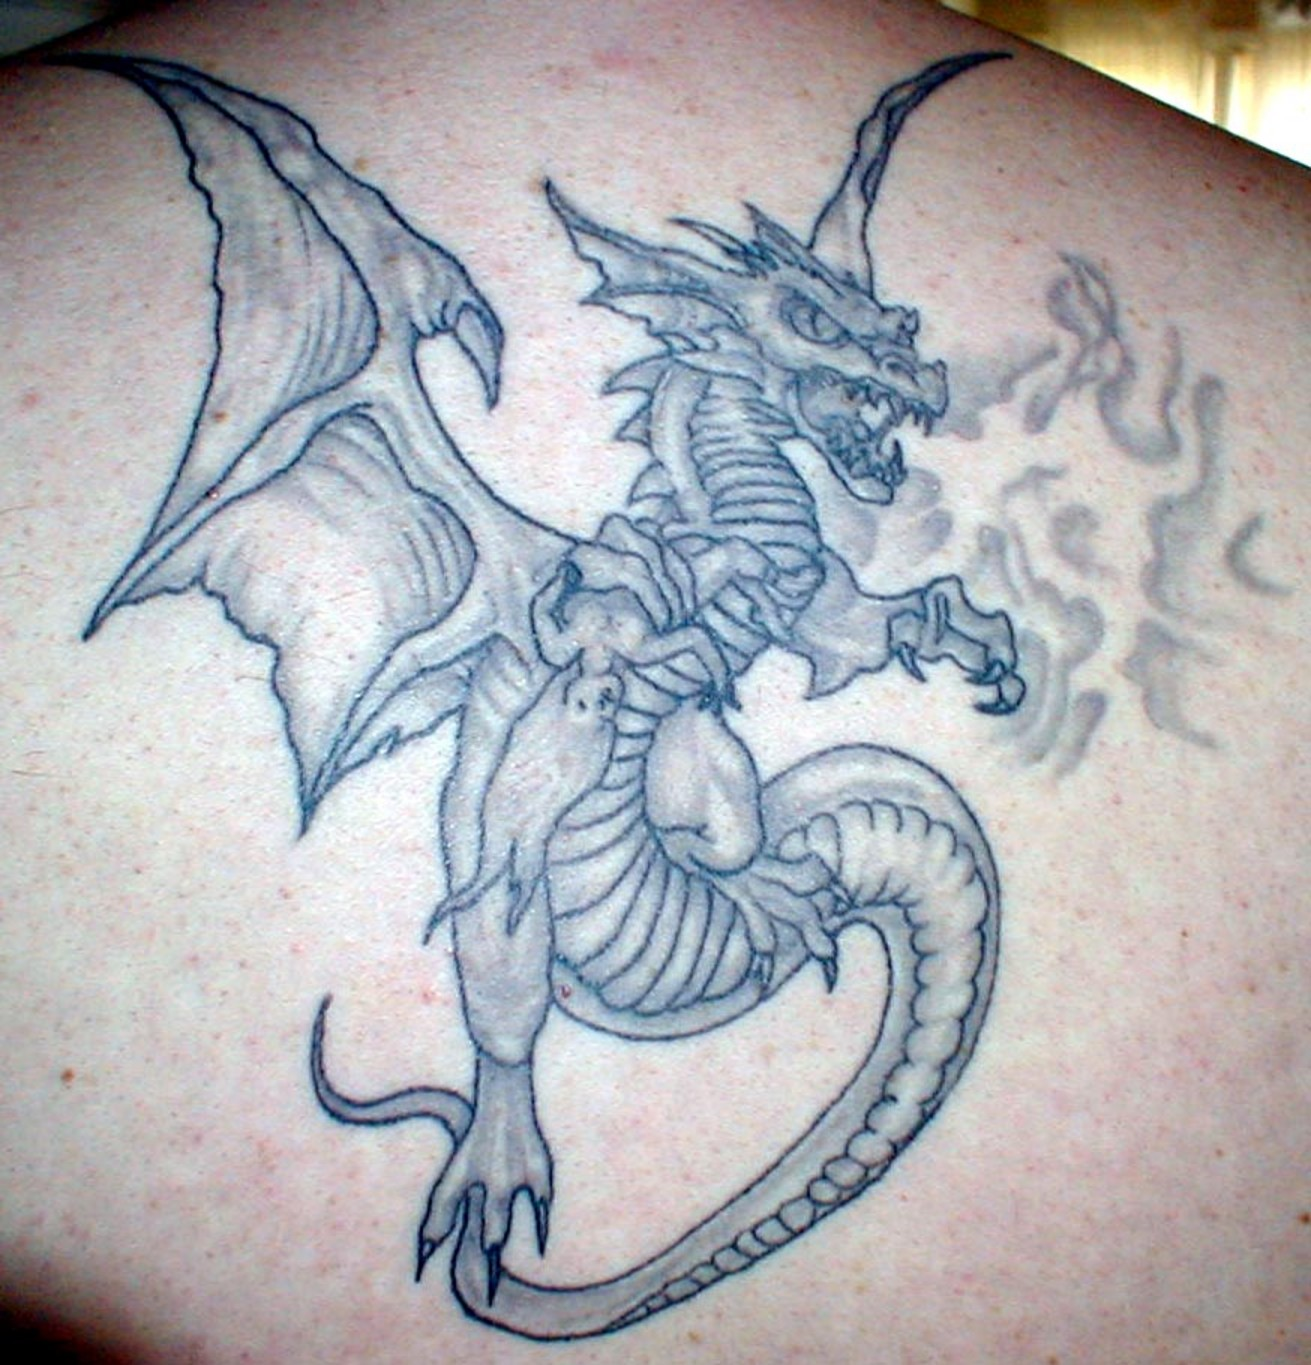 Designs And Tattoo Ideas: Dragon Tattoos Designs, Ideas And Meaning